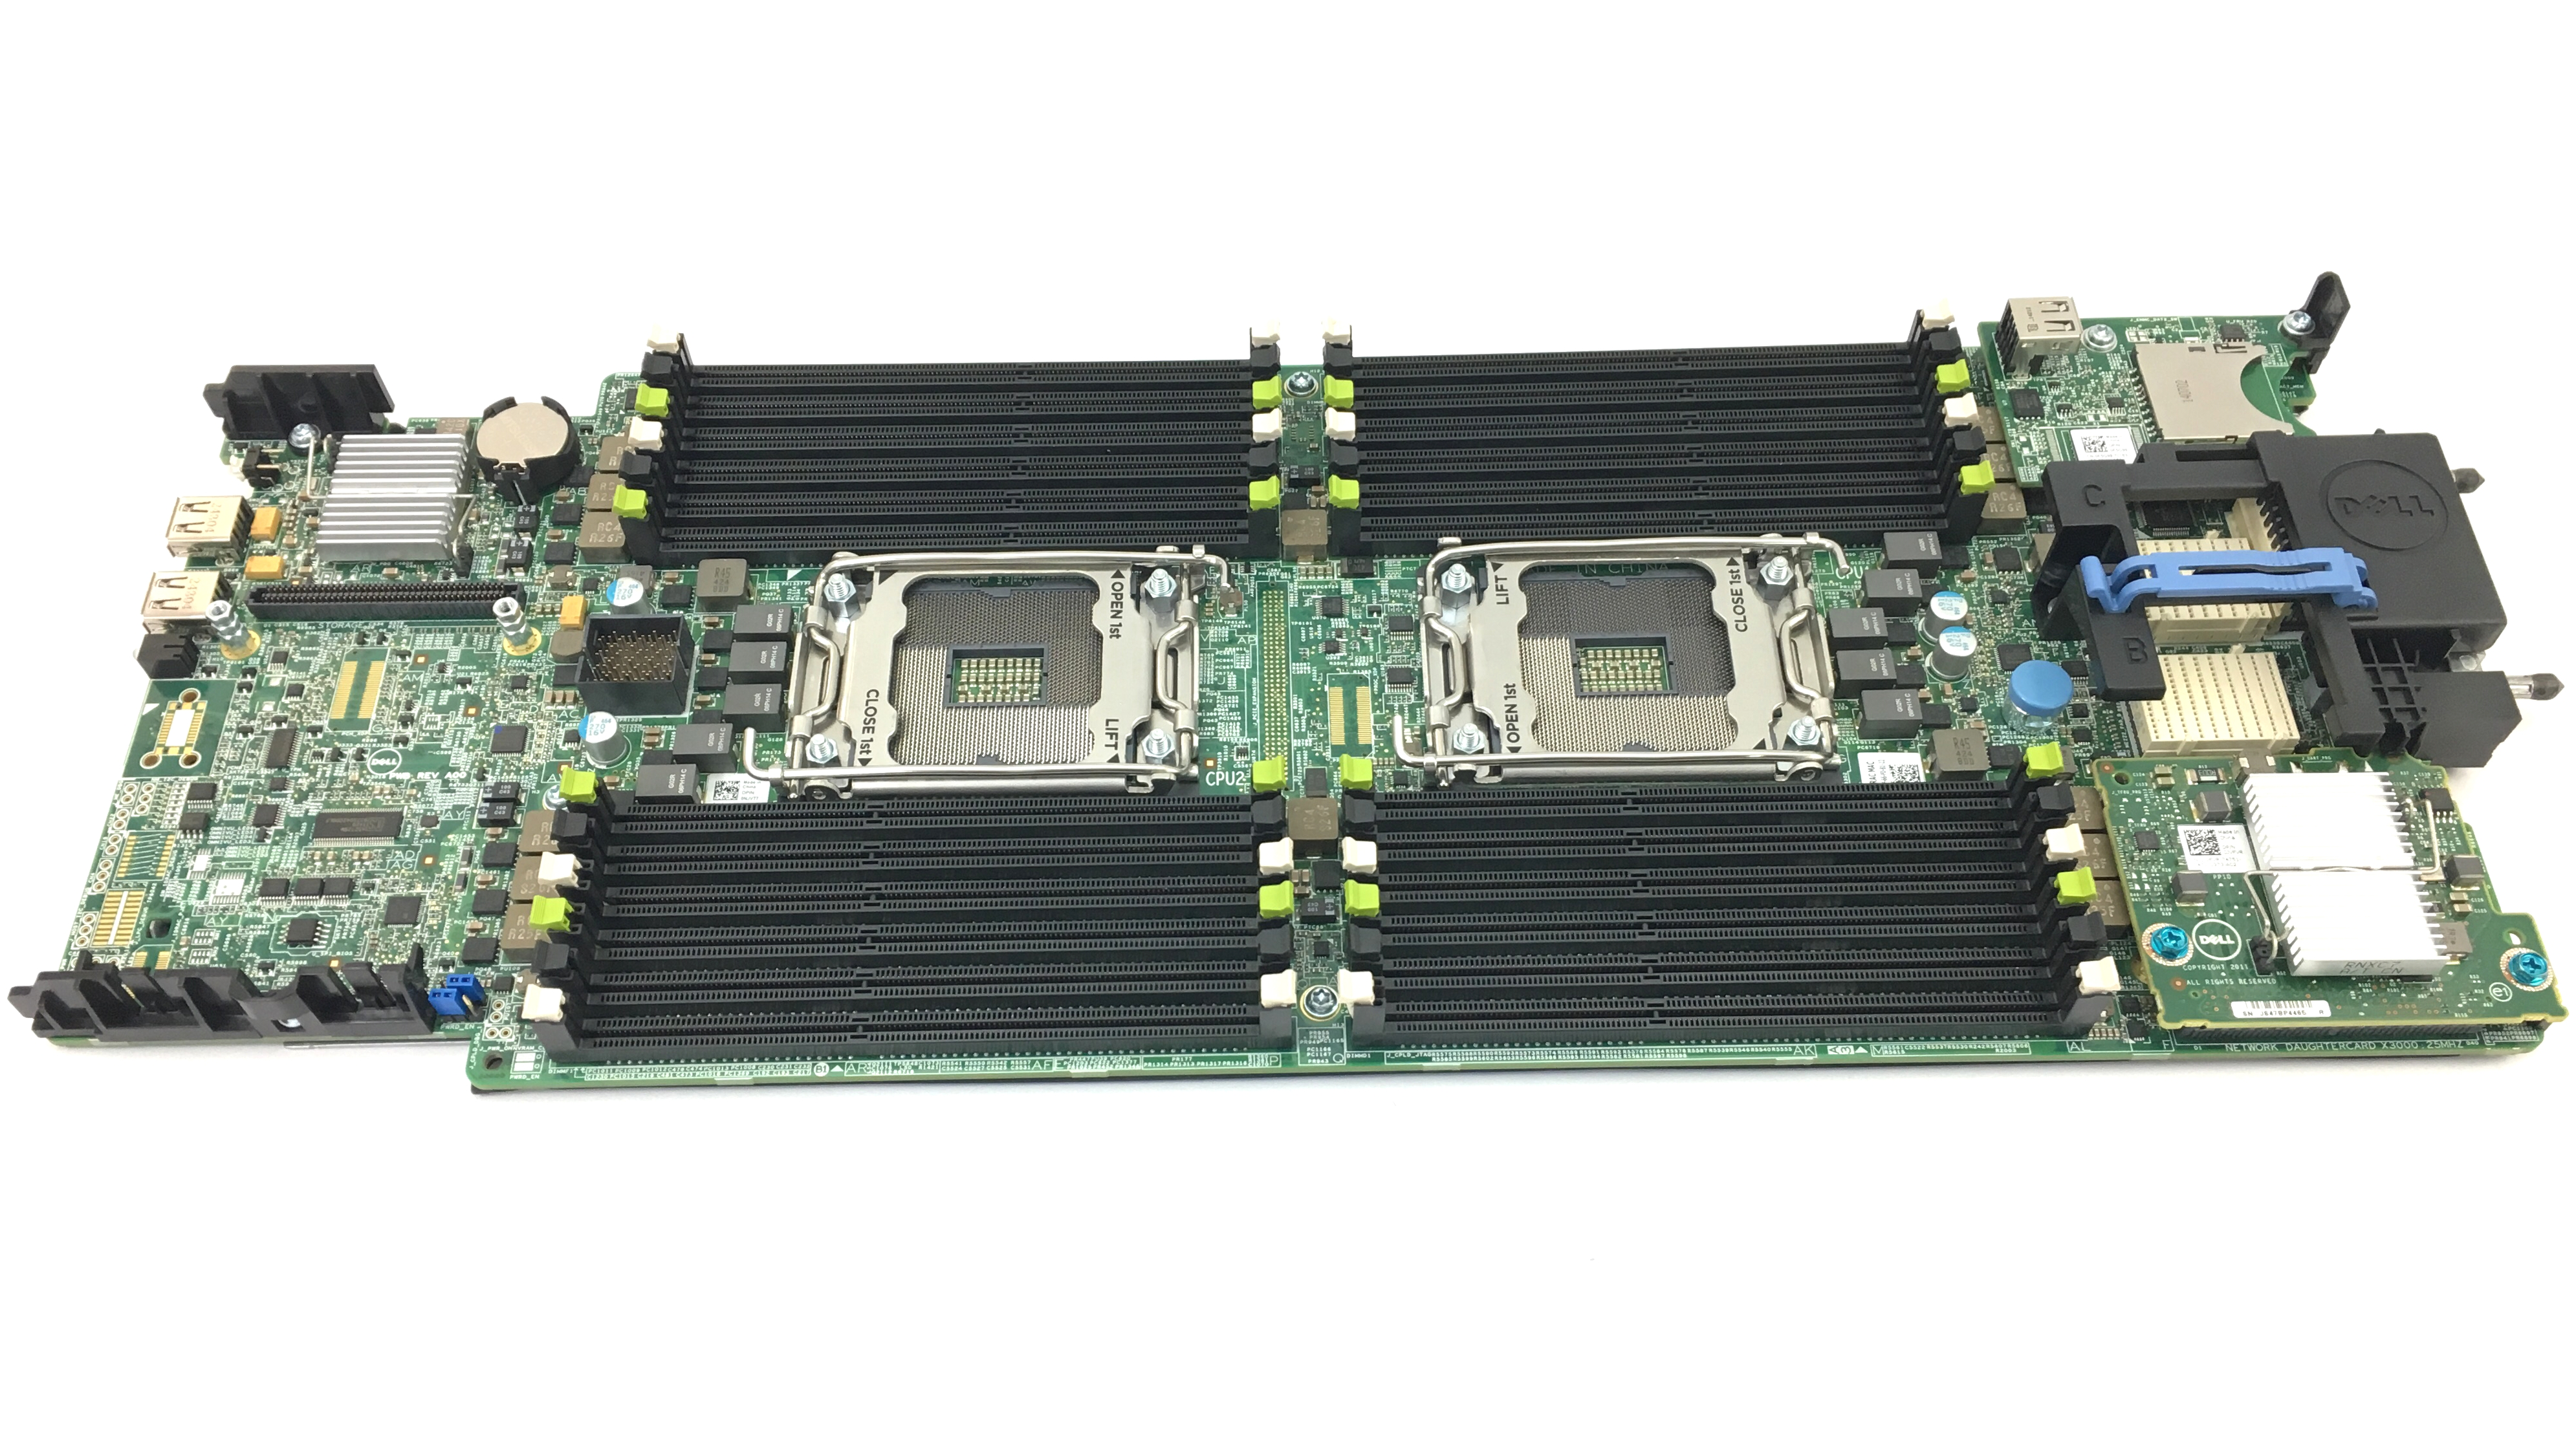 Dell PowerEdge M620 Blade Server System Board (NJVT7)